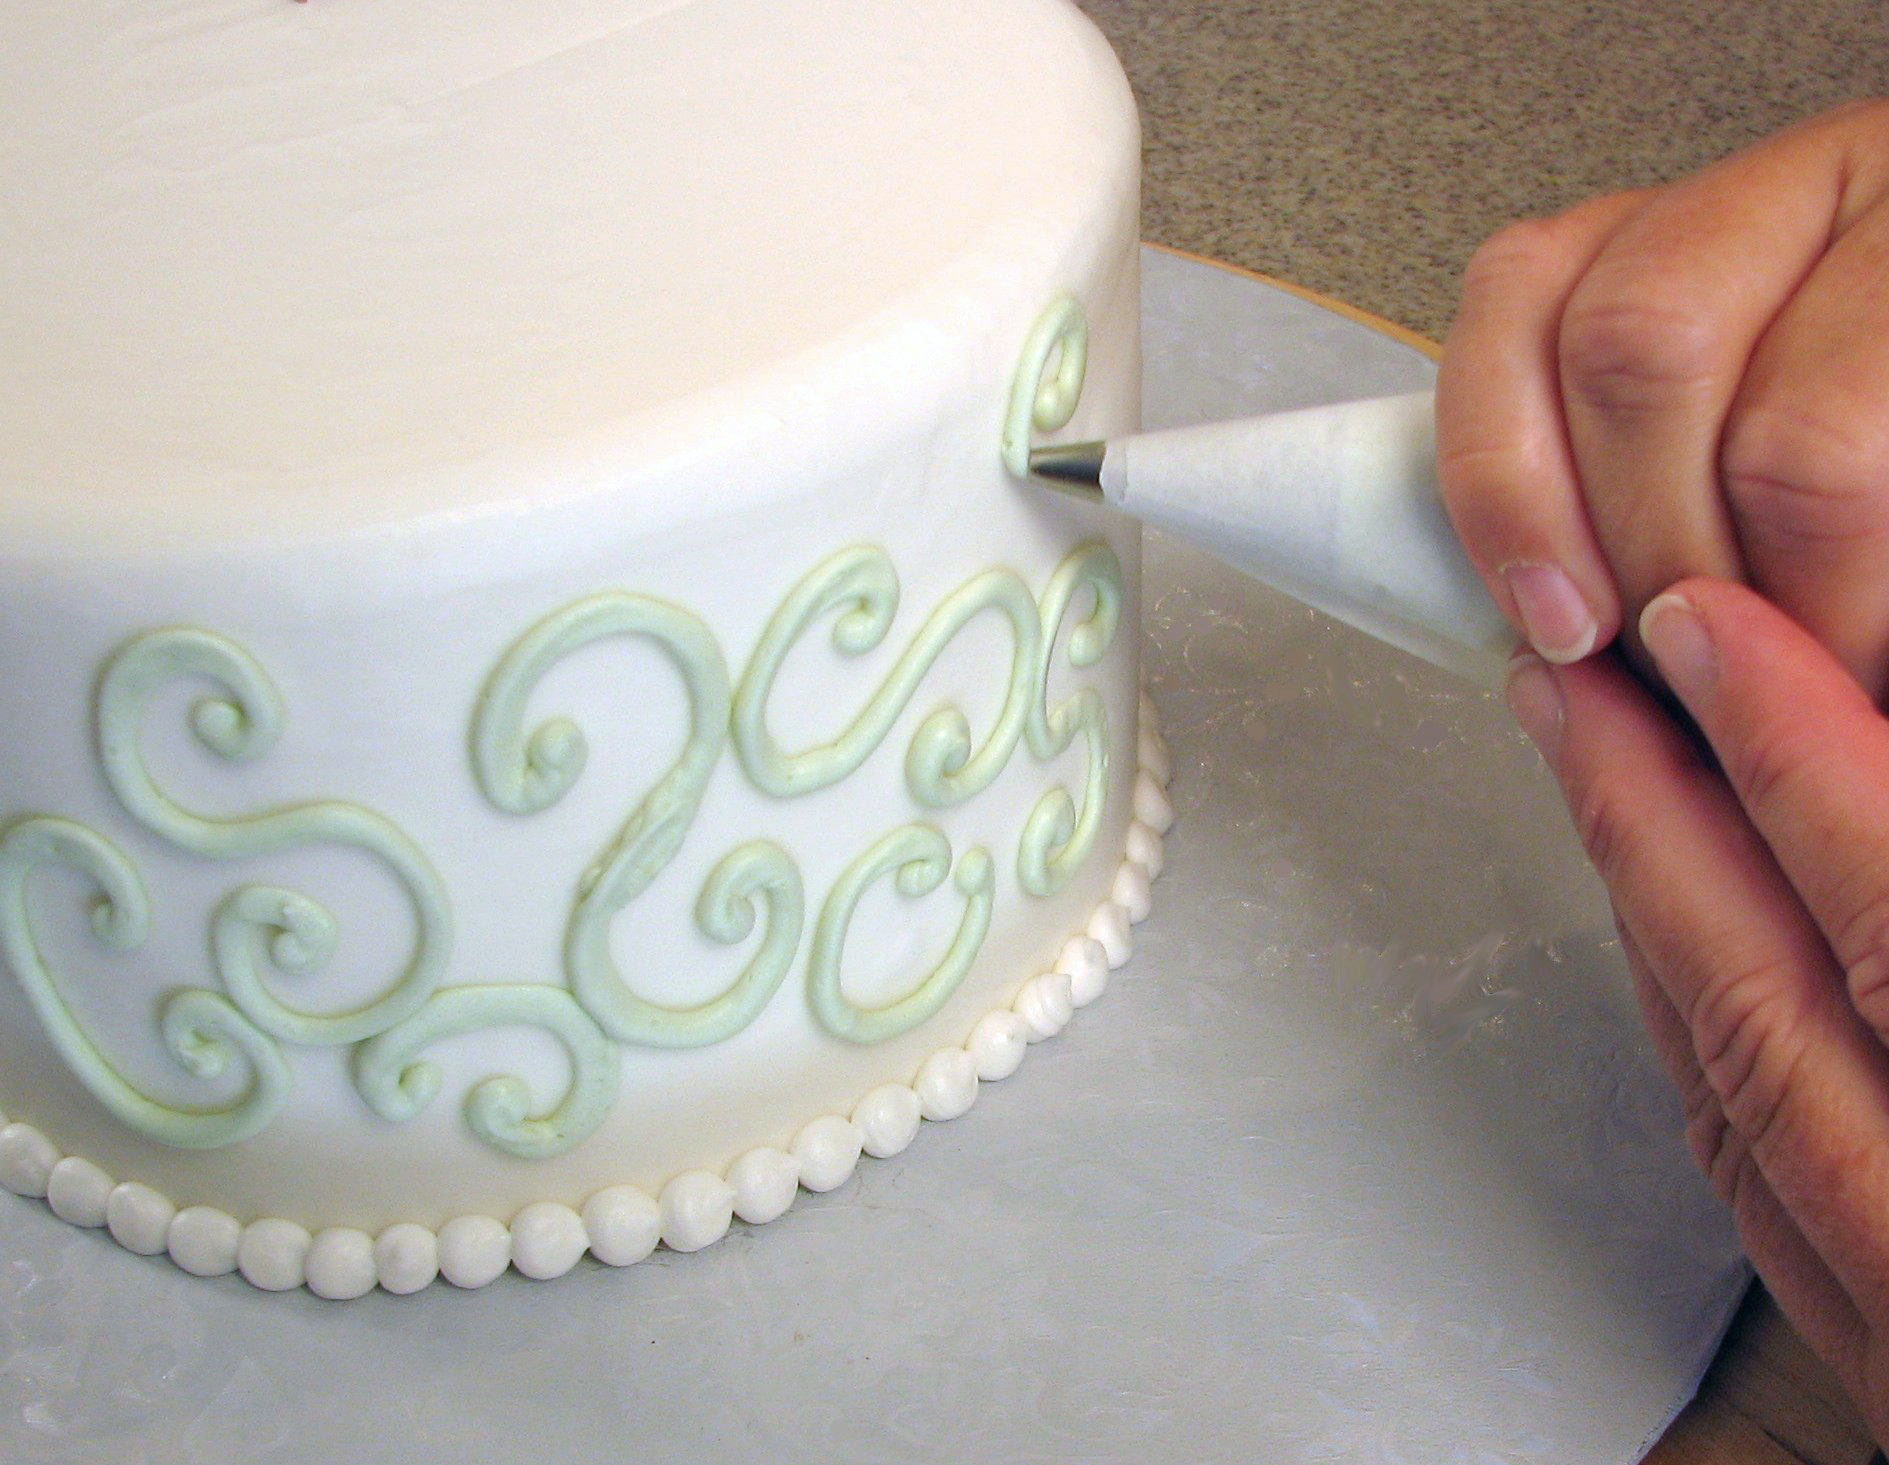 Homemade Cake Icing Designs : Cake decorating - Wikipedia